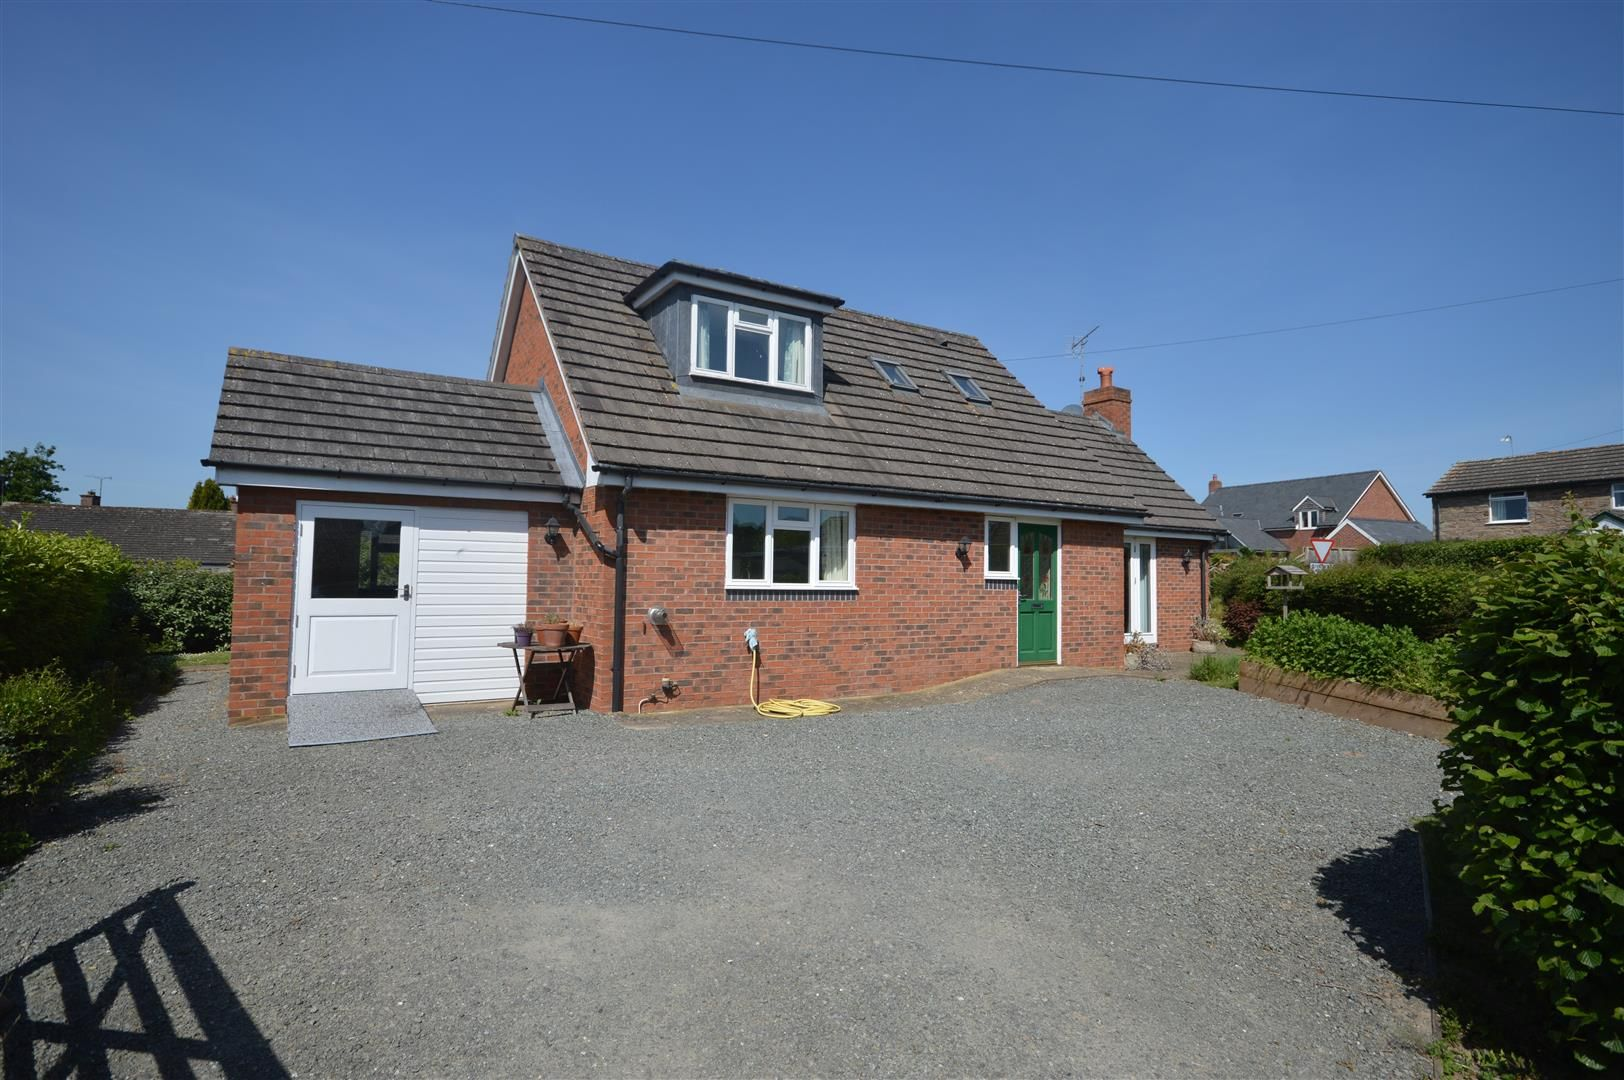 3 bed detached-bungalow for sale in Almeley 1